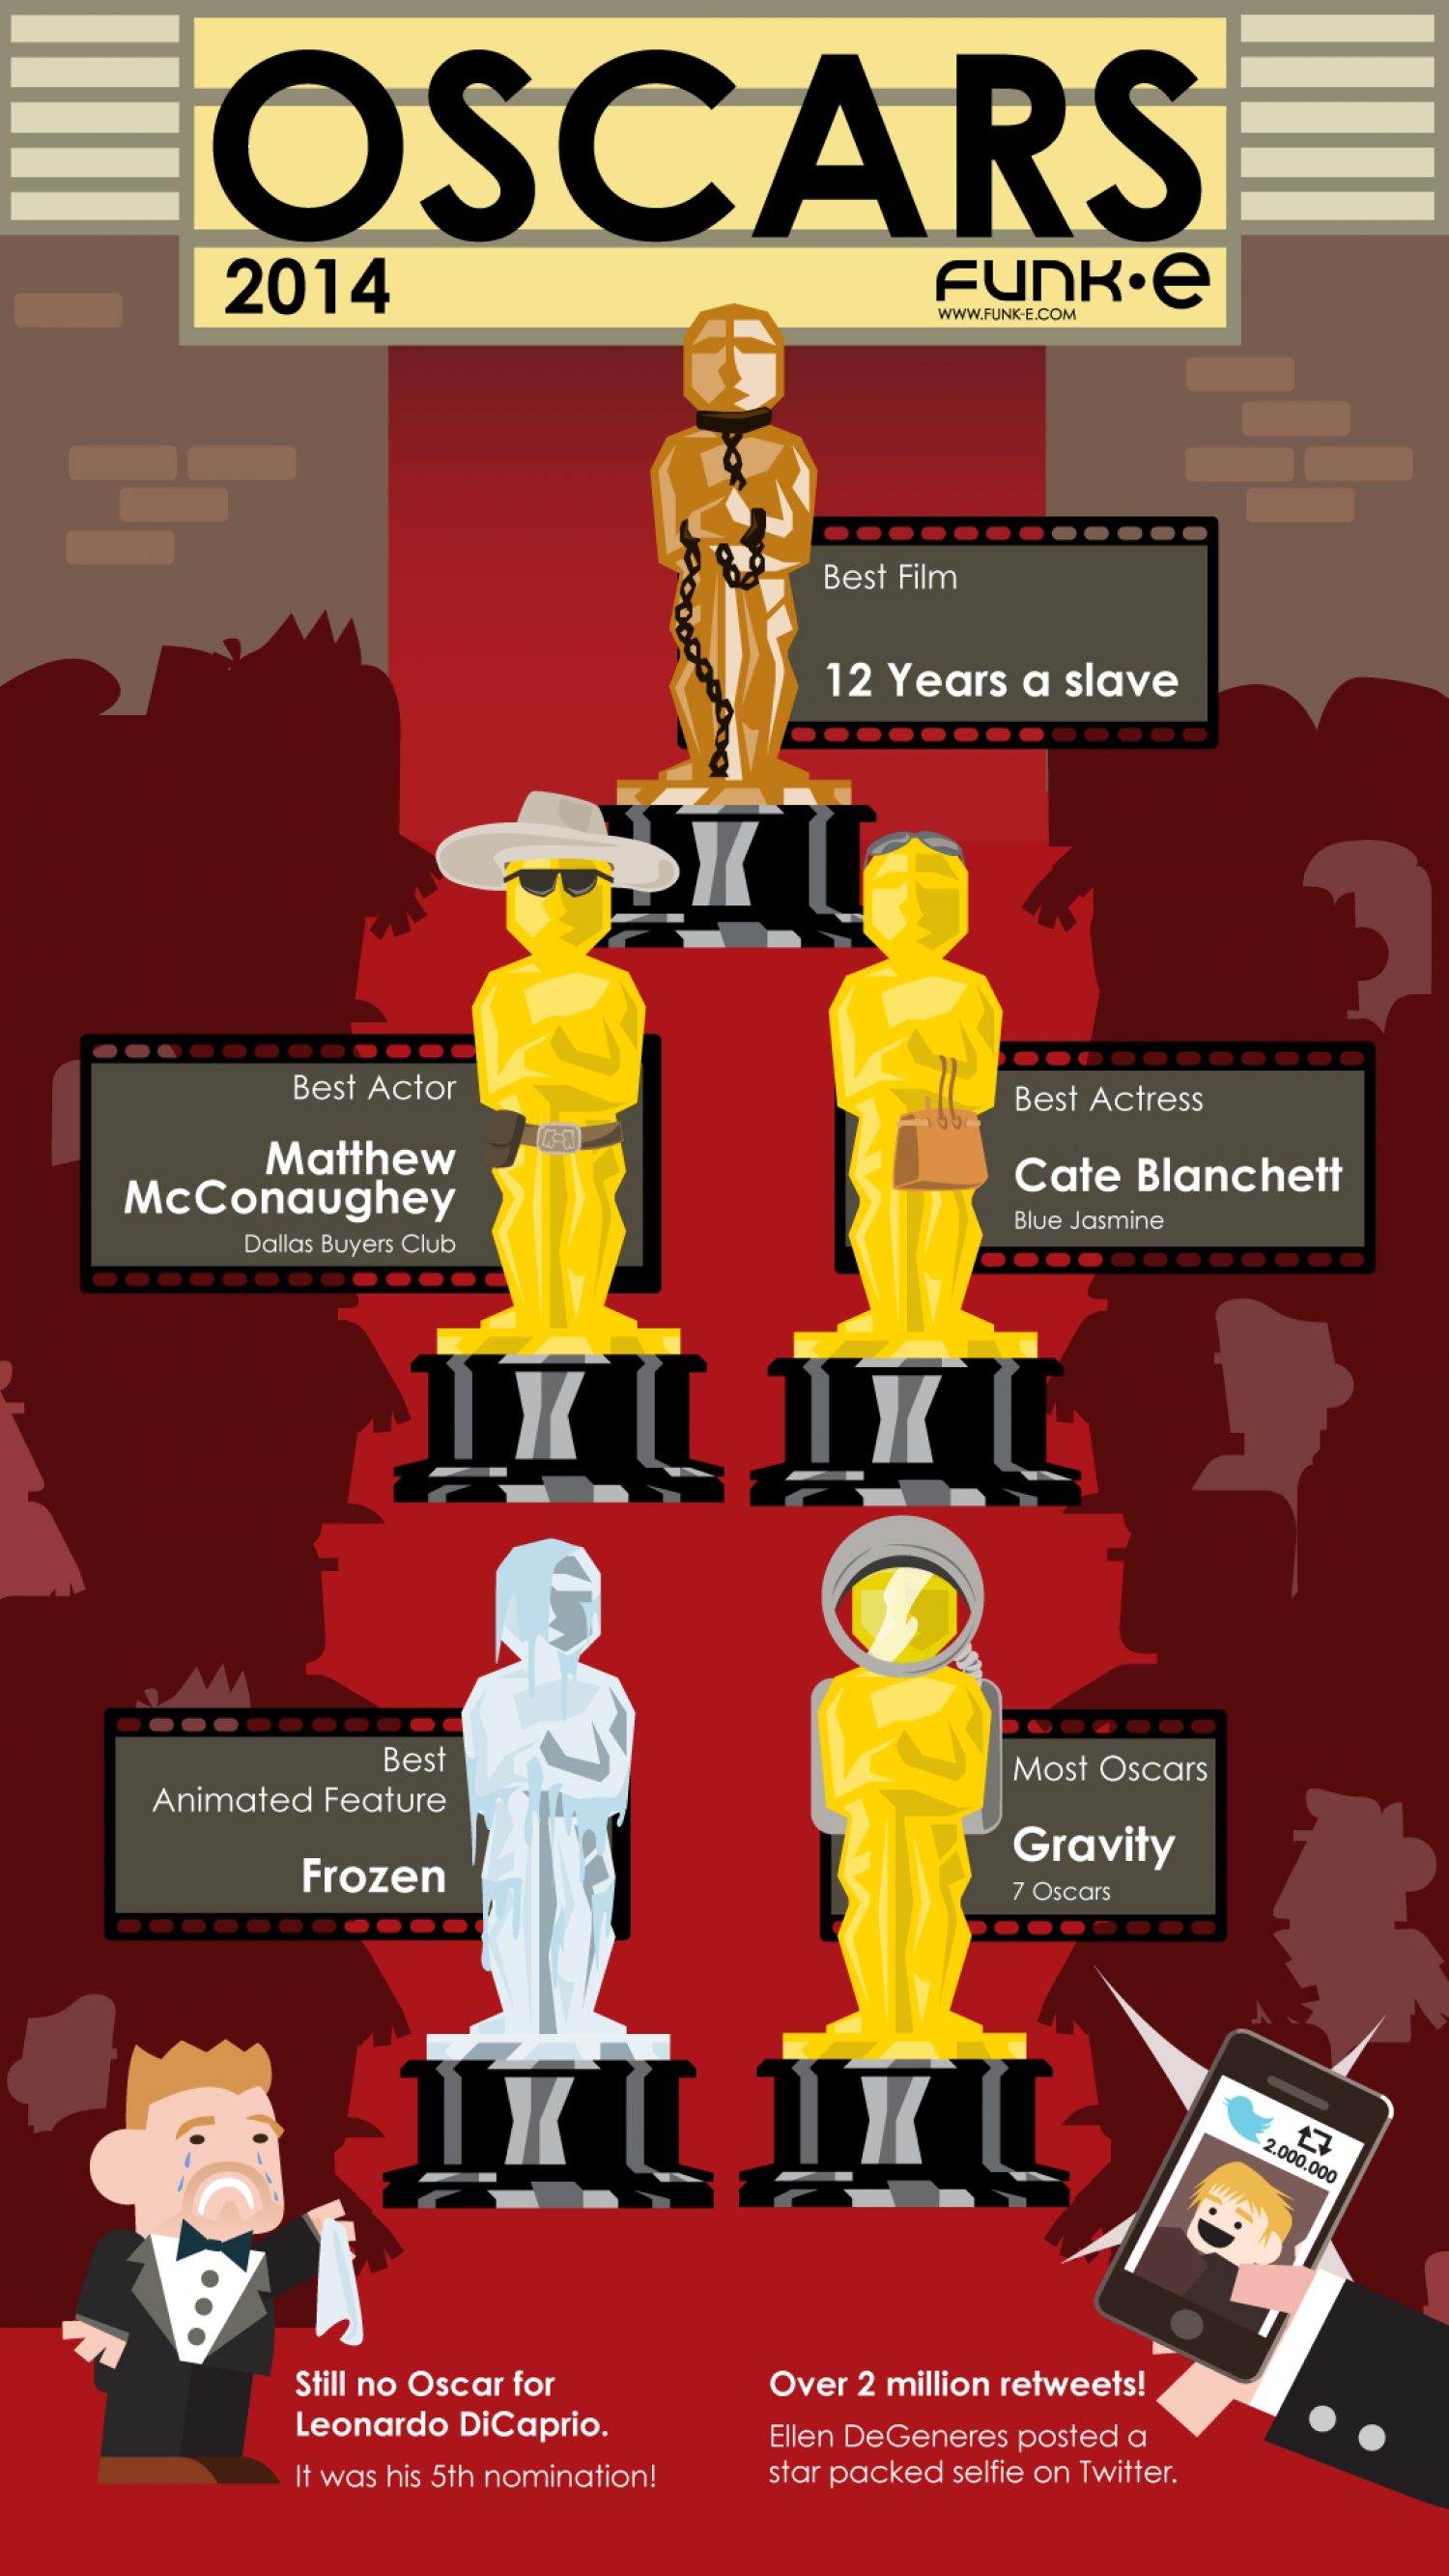 Oscars 2014 Infographic